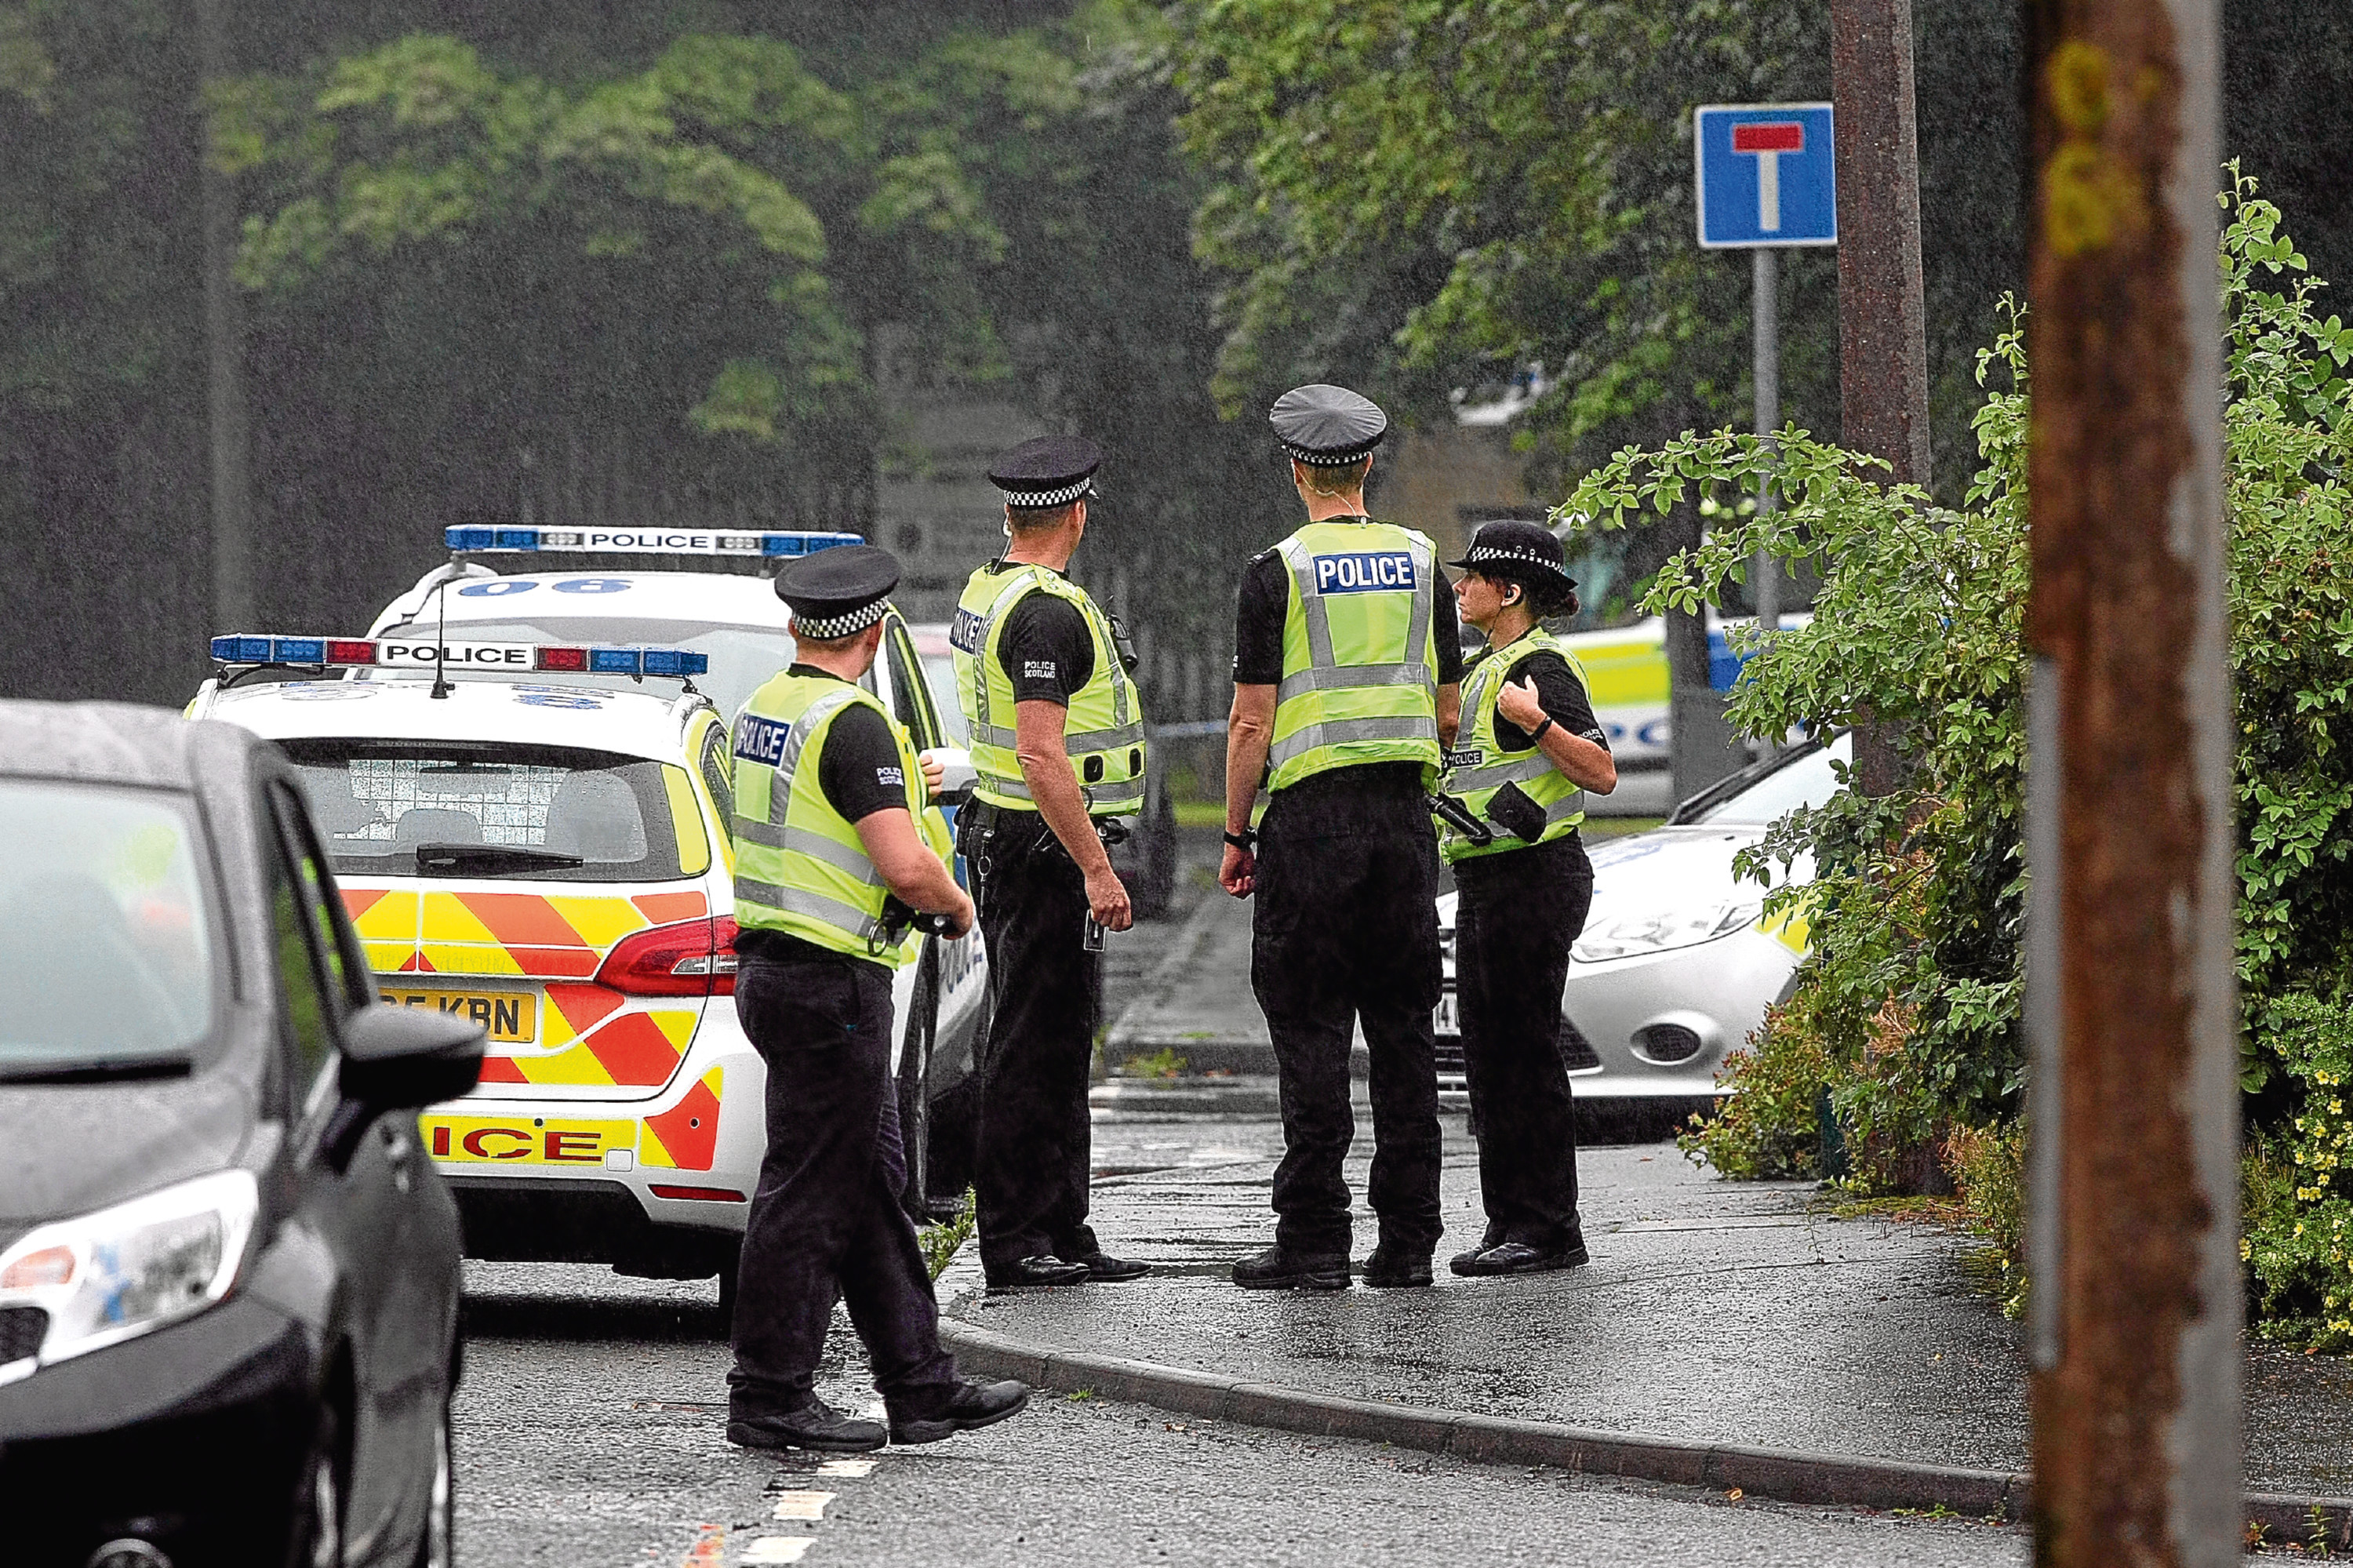 Police at the scene of the West Pitkerro Industrial Estate incident